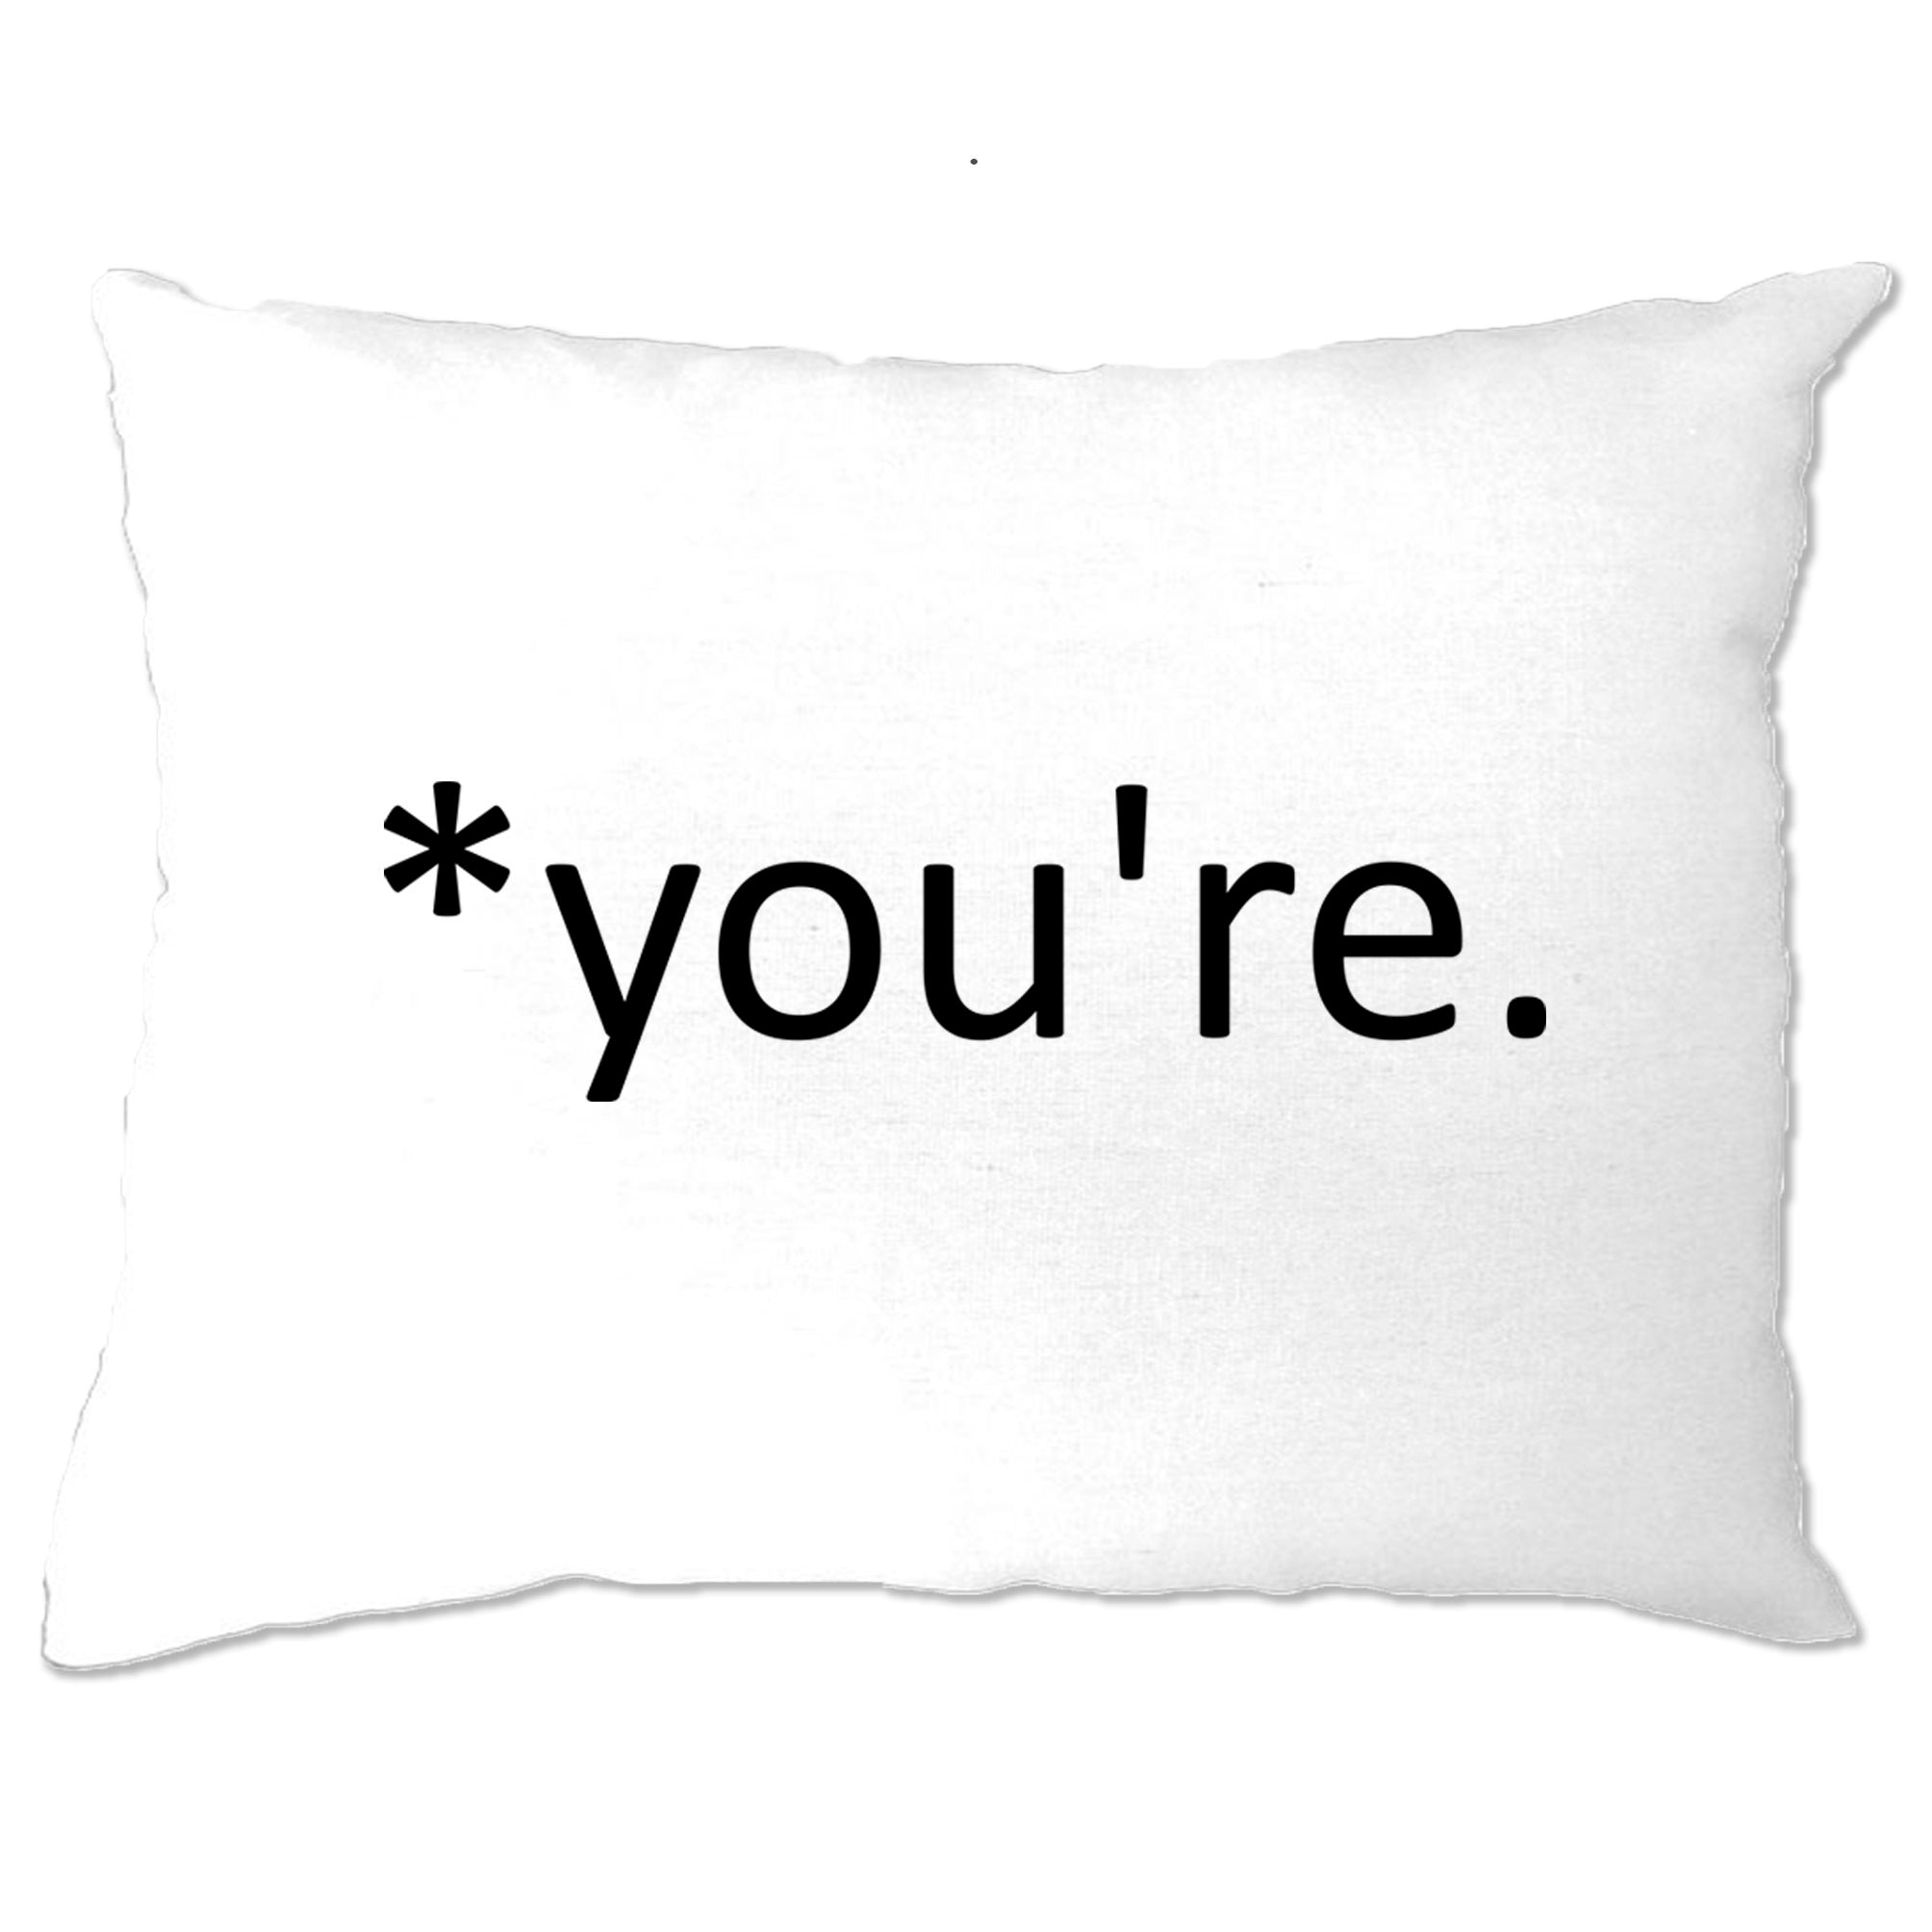 Correction of the Proper 'You're' Funny Pillow Case Joke